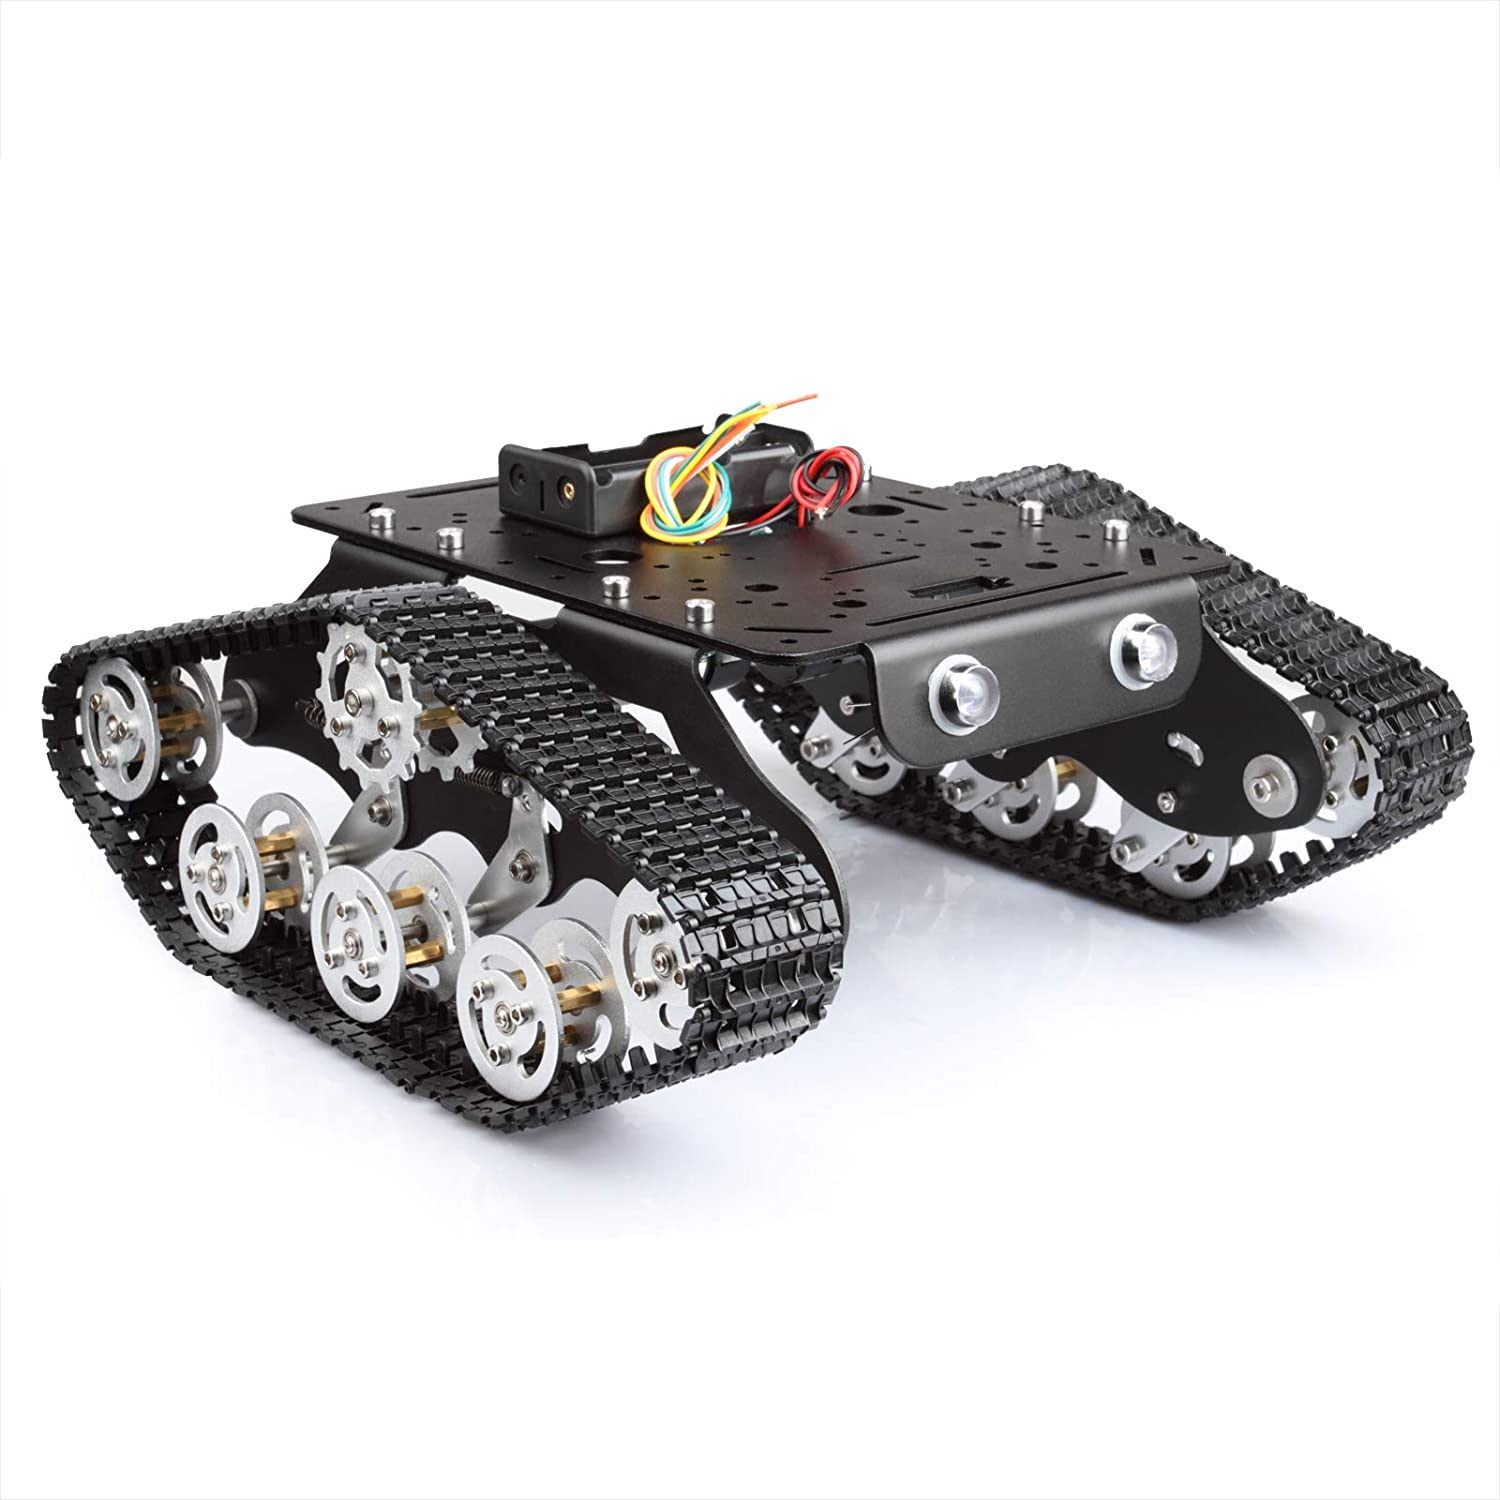 Tracked Robot Smart Car Platform Aluminum alloy Chassis with Dual DC 9V Motor for Arduino DIY